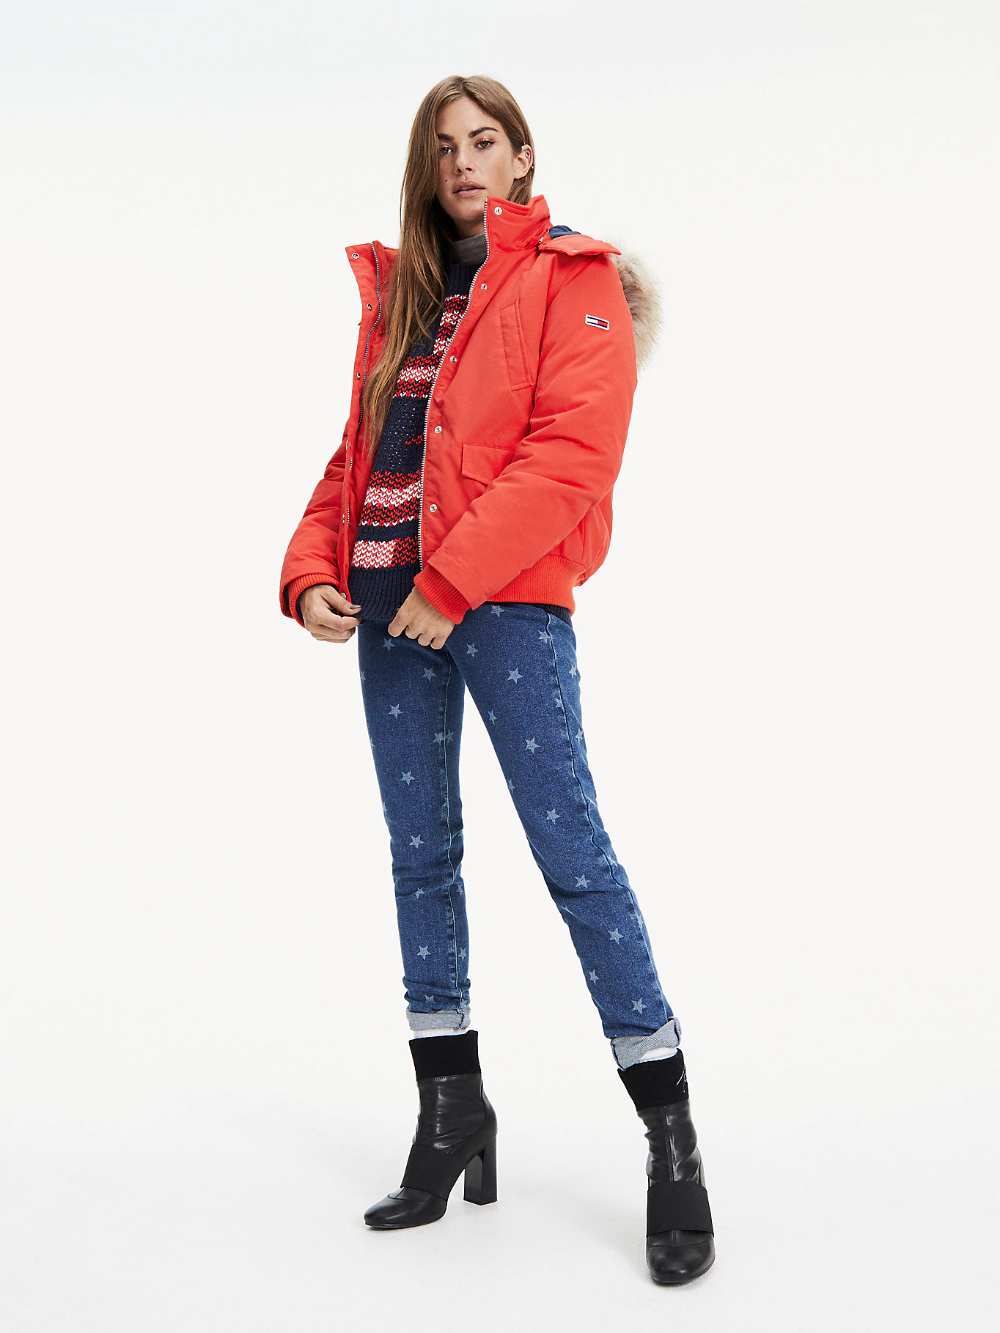 Hooded Down Bomber Jacket Red Tommy Hilfiger Outerwear Jackets Jackets Women S Coats Jackets [ 1333 x 1000 Pixel ]